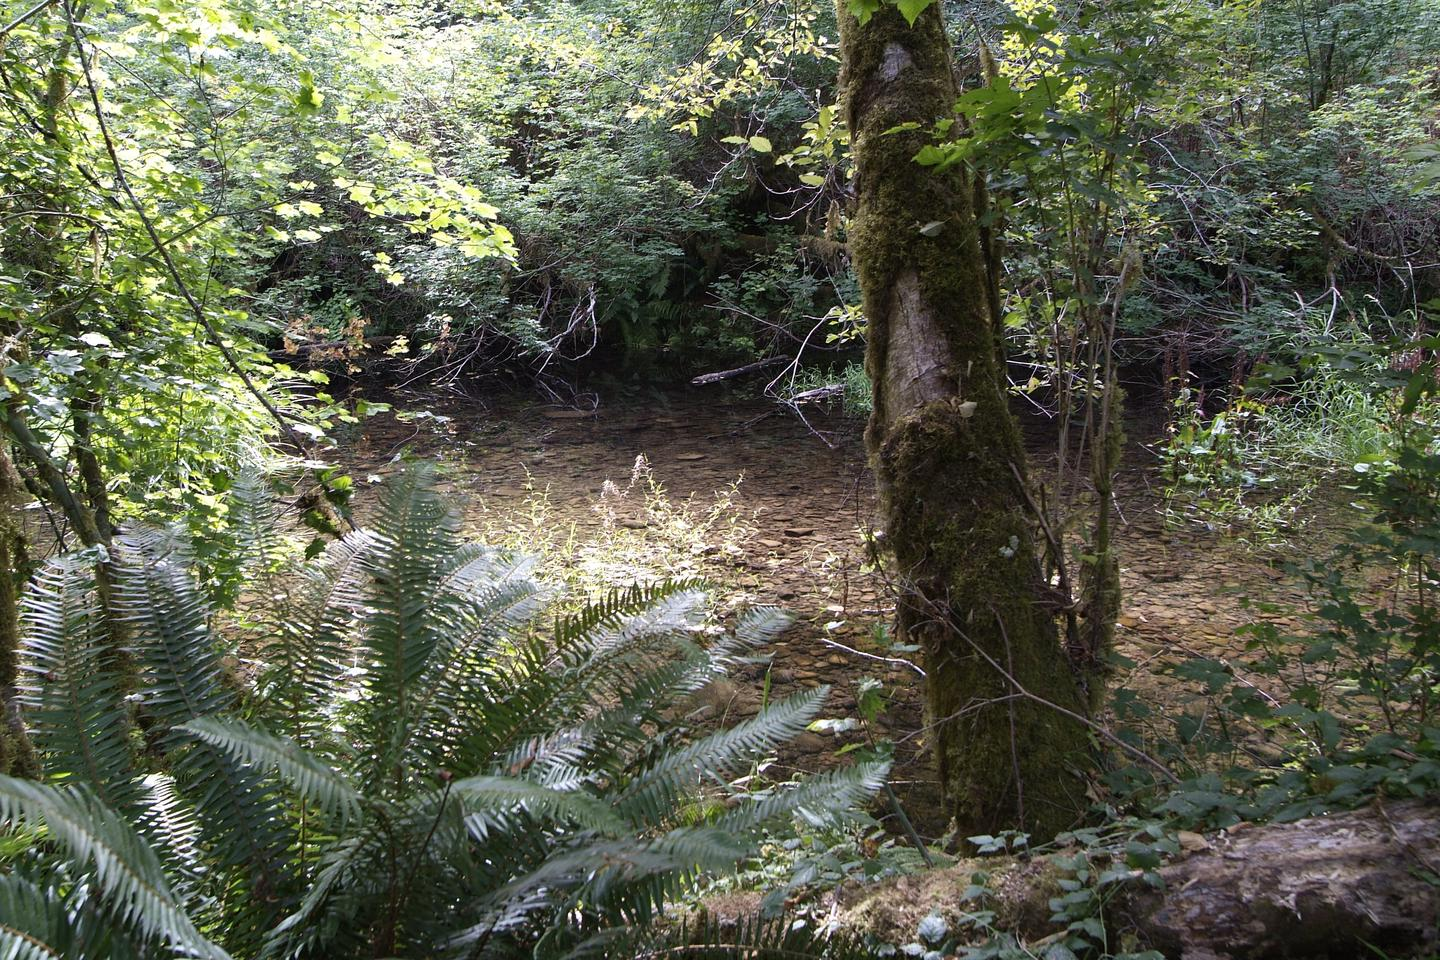 Whittaker Creek access for camp site 17. Camp site 17 Whittaker Creek access.